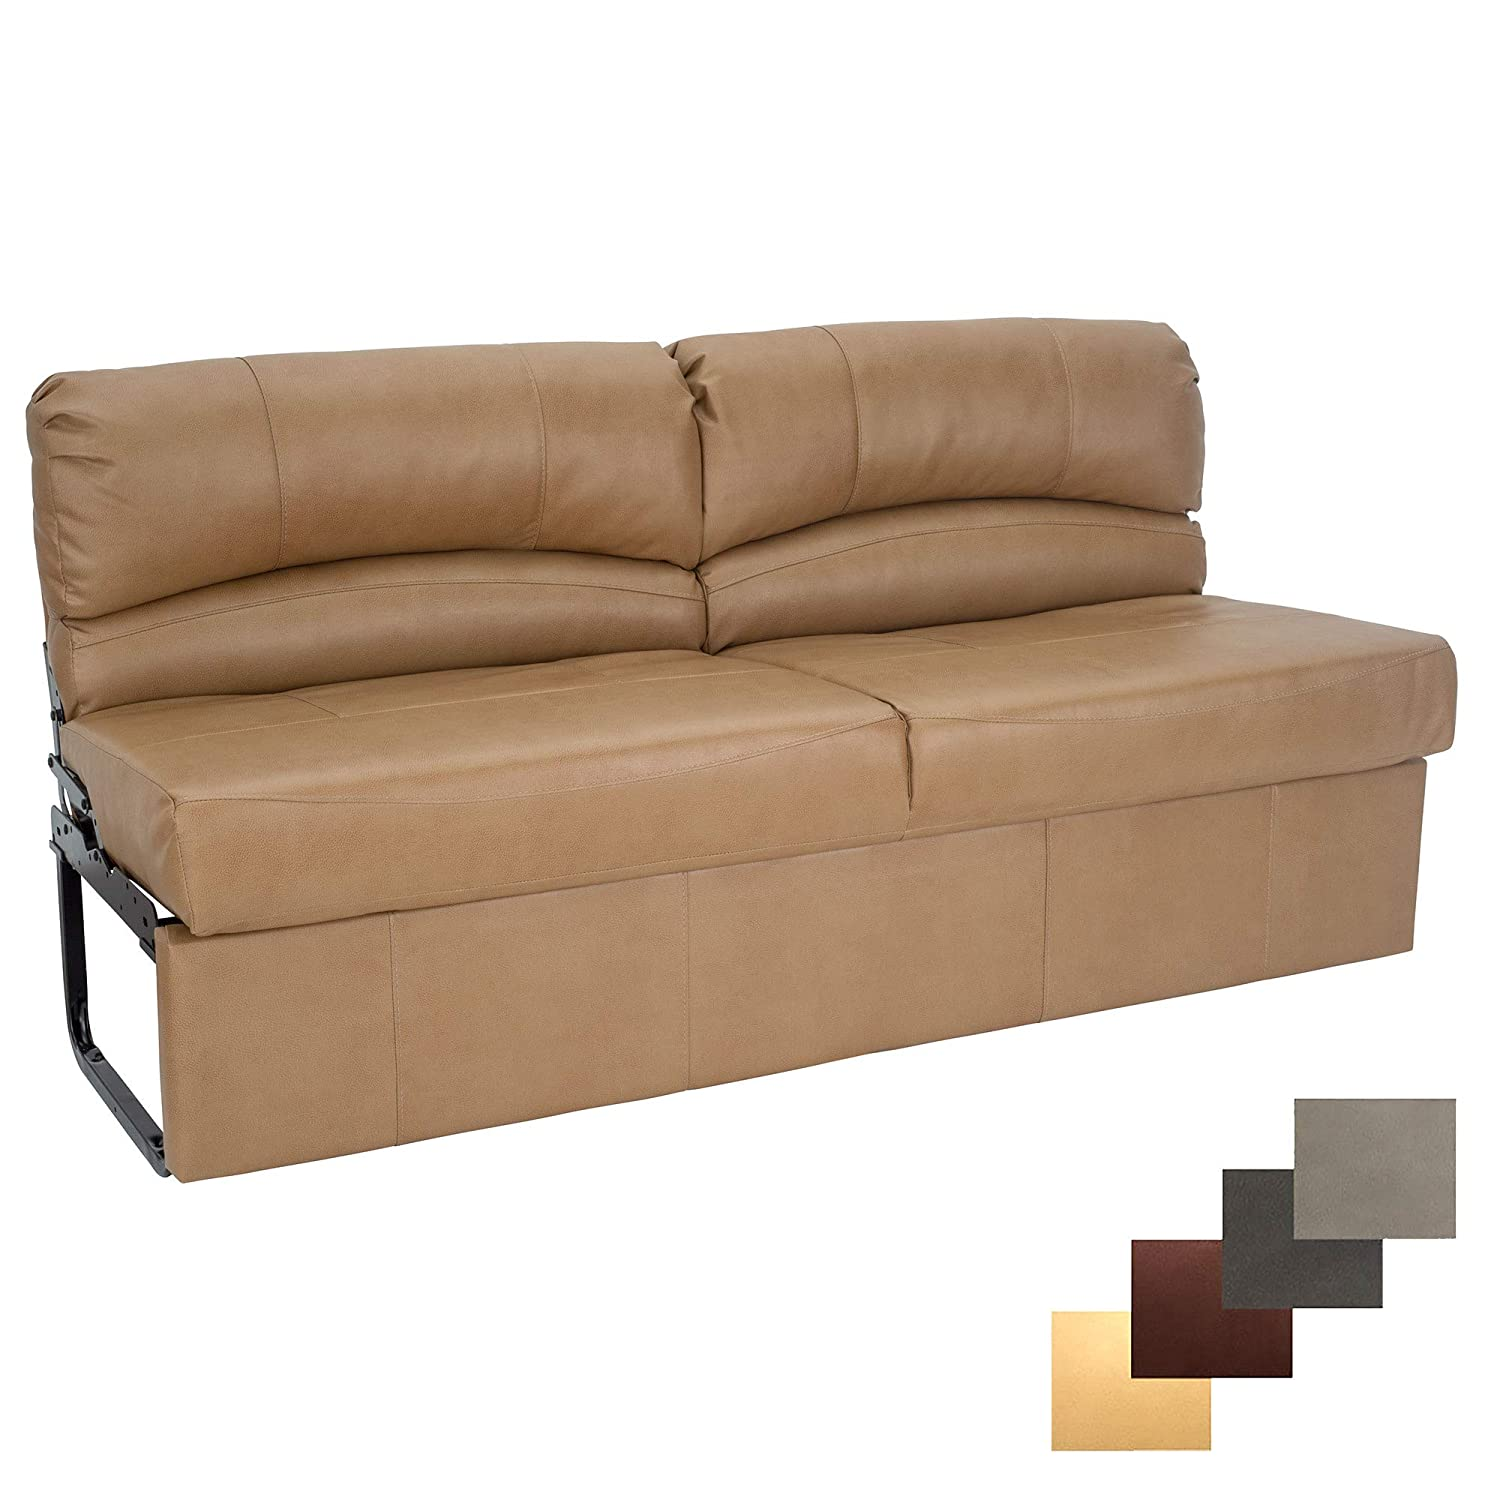 Superb Charles Rv Jackknife Sofa Love Seat Sleeper Sofa Length Options 62 68 72 11 Legs And Hardware Included 68 Inch Toffee Creativecarmelina Interior Chair Design Creativecarmelinacom